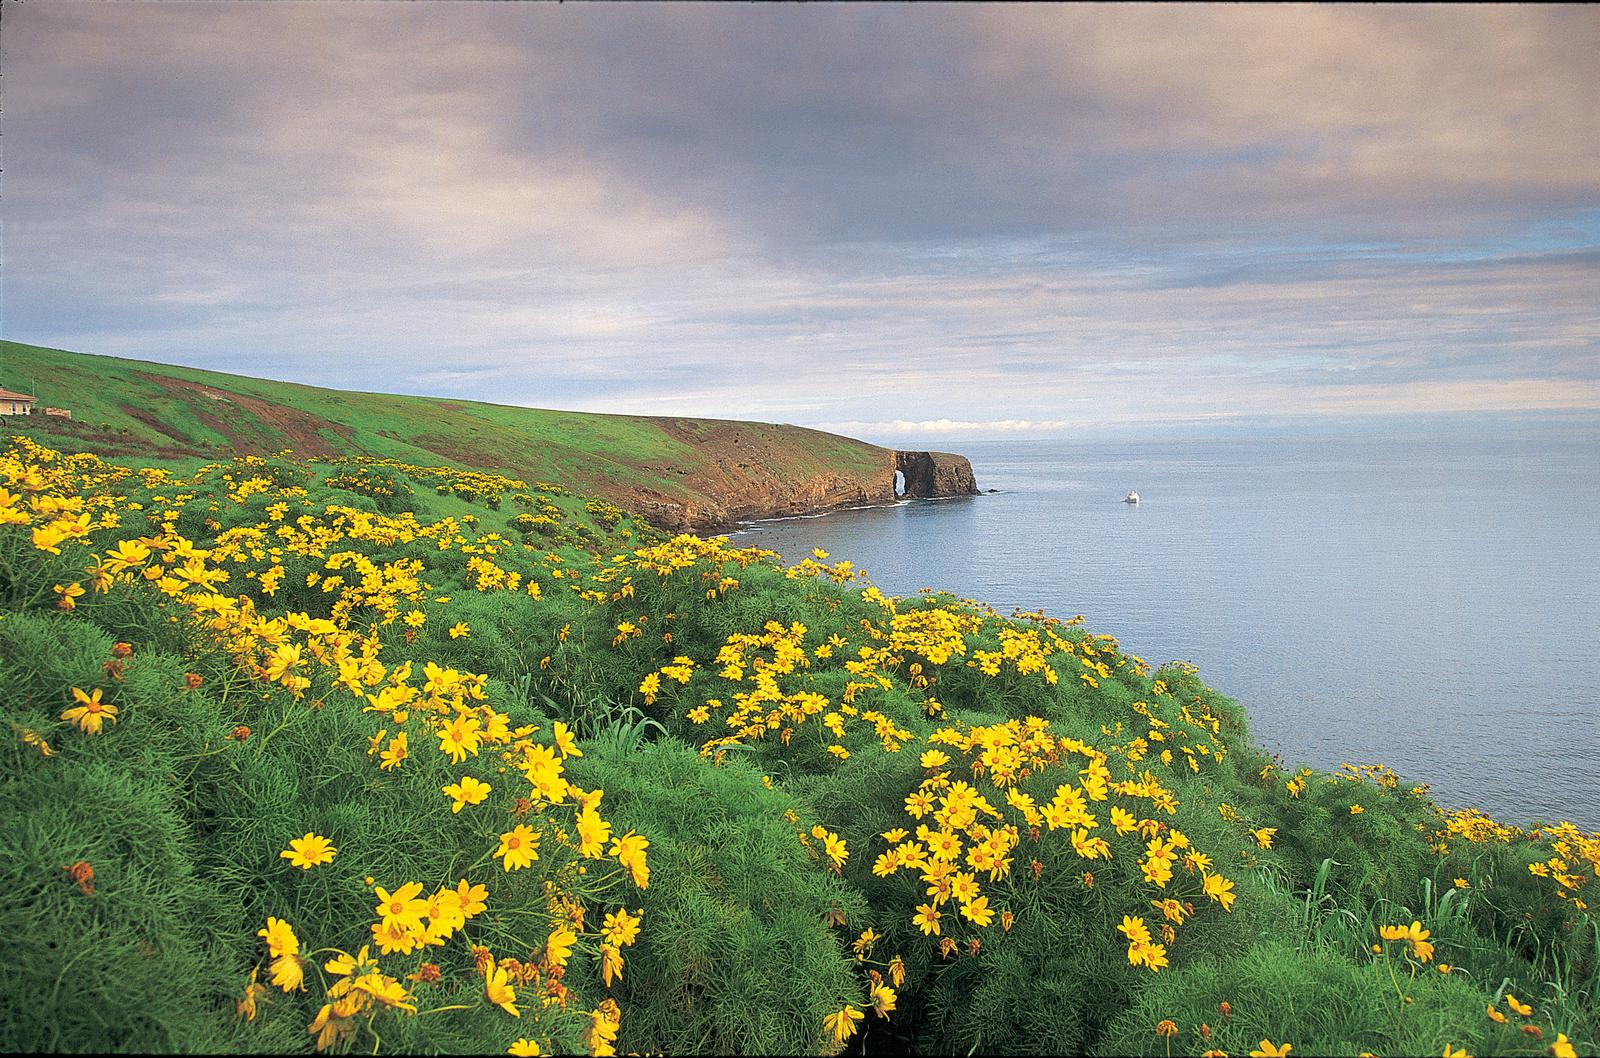 Yellow flowered plants covering ocean bluff overlooking coastline with arch in the distance.Arch Point, Santa Barbara Island